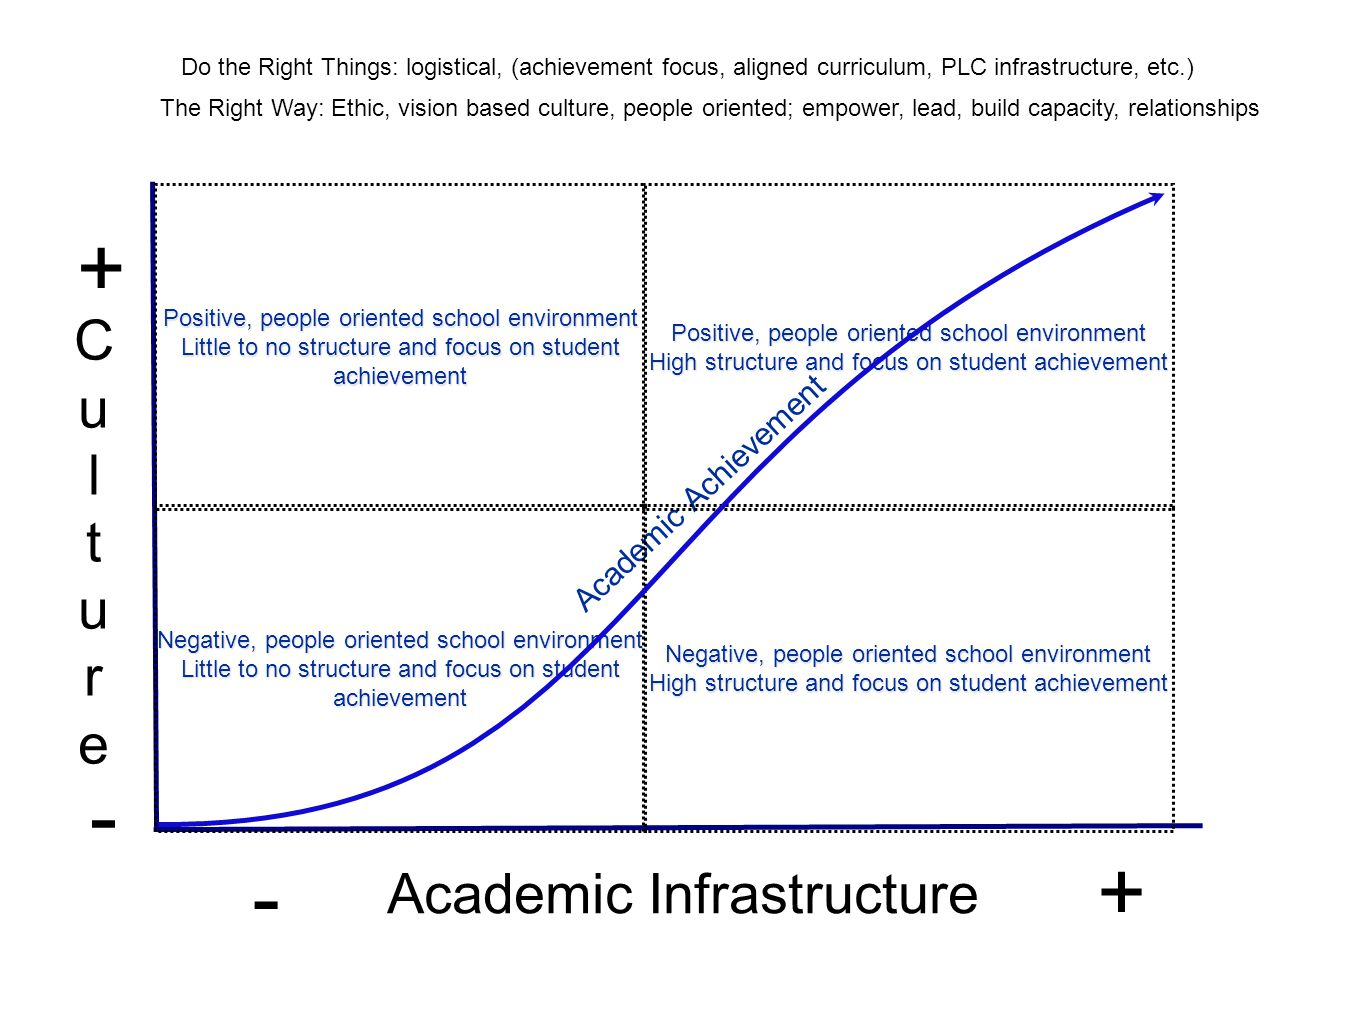 Academic Infrastructure CultureCulture + + - - Do the Right Things: logistical, (achievement focus, aligned curriculum, PLC infrastructure, etc.) Do the Right Things: logistical The Right Way: Ethic, vision based culture, people oriented; empower, lead, build capacity, relationships Academic Achievement Negative, people oriented school environment Little to no structure and focus on student achievement Positive, people oriented school environment Little to no structure and focus on student achievement Negative, people oriented school environment High structure and focus on student achievement Positive, people oriented school environment High structure and focus on student achievement